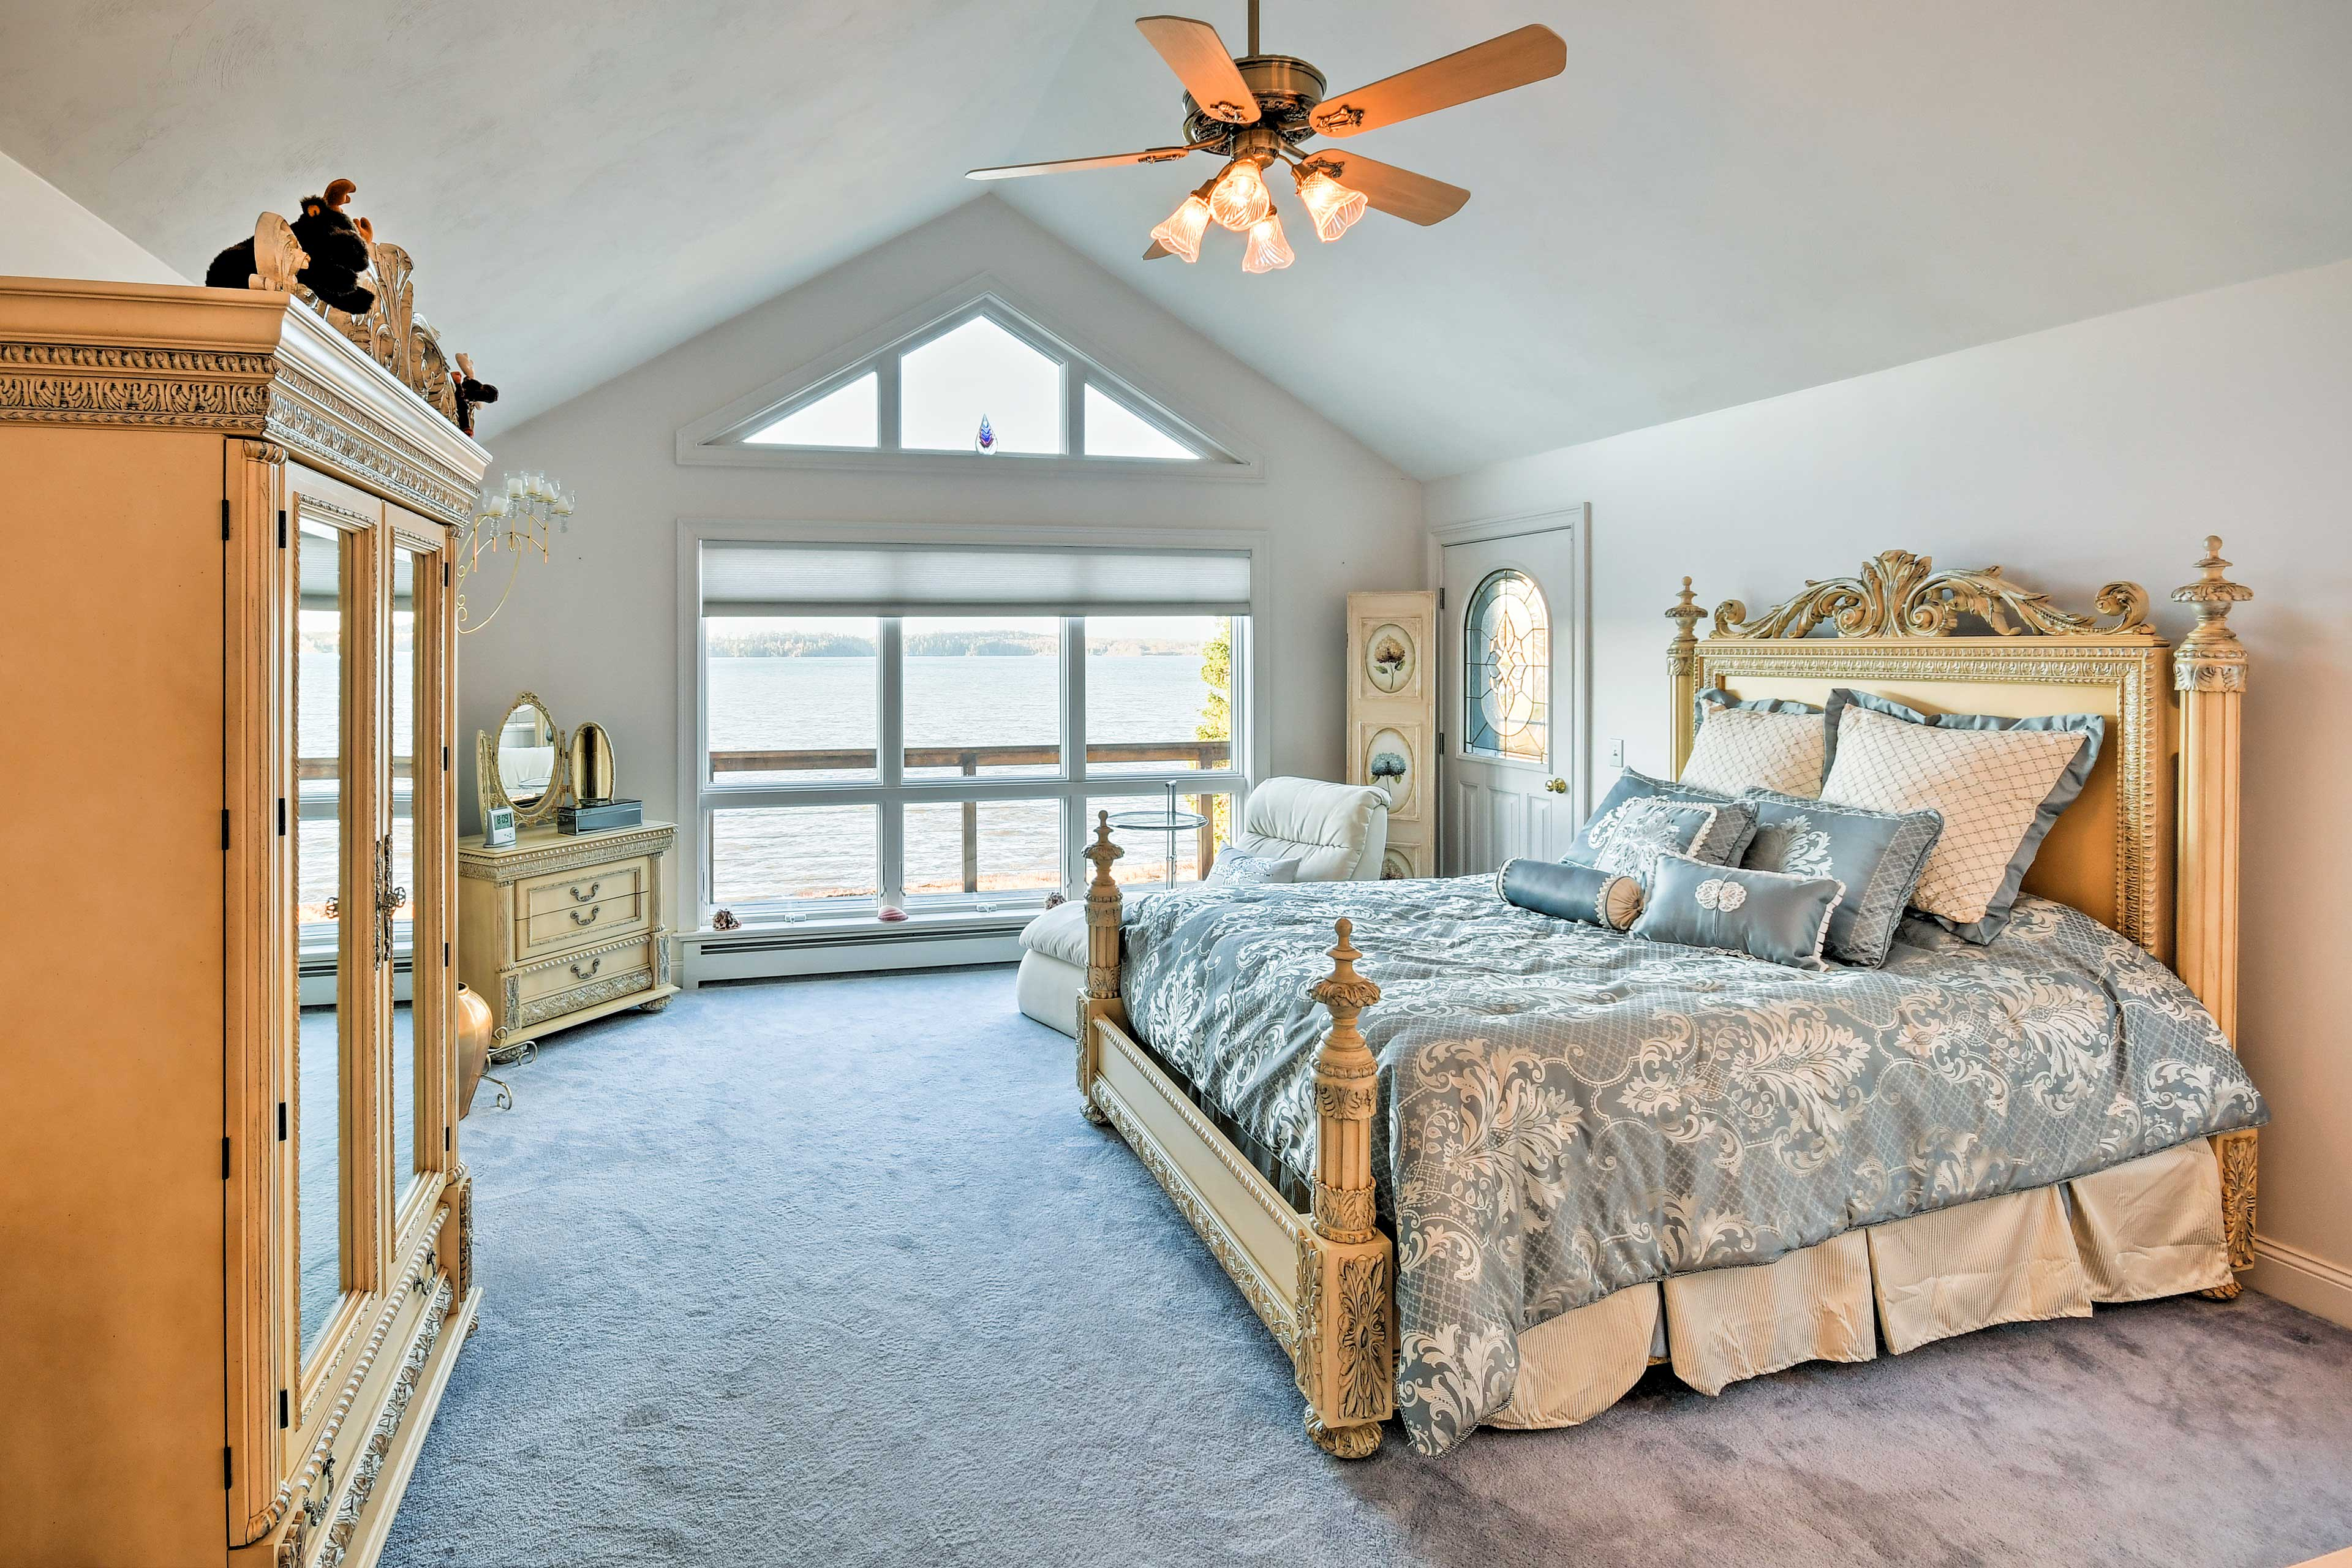 Live like royalty as you lie back on a plush queen bed in the master bedroom.